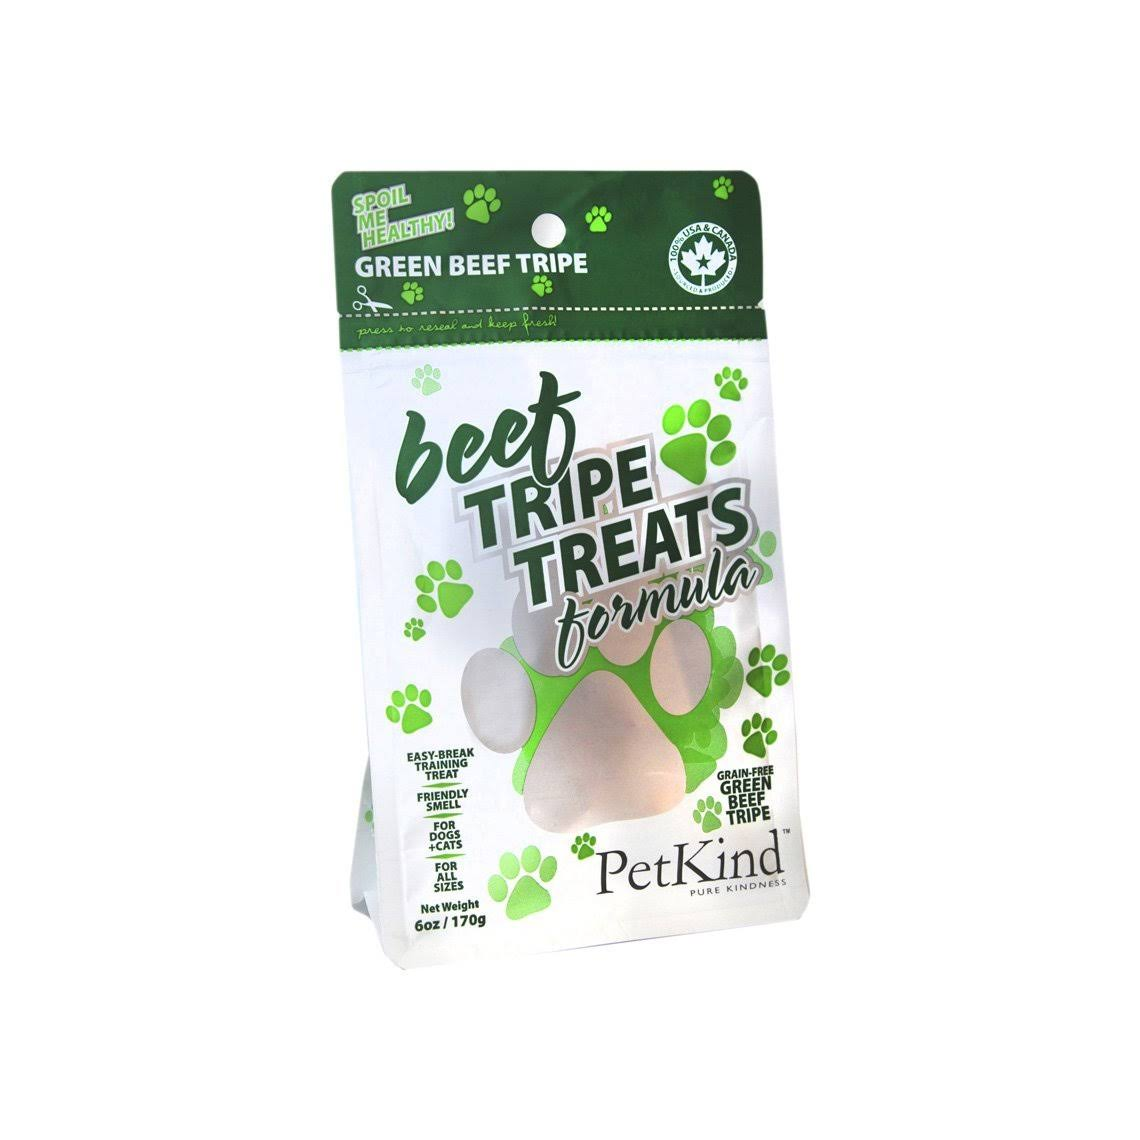 PetKind Green Beef Tripe Treats for Dogs - 6oz